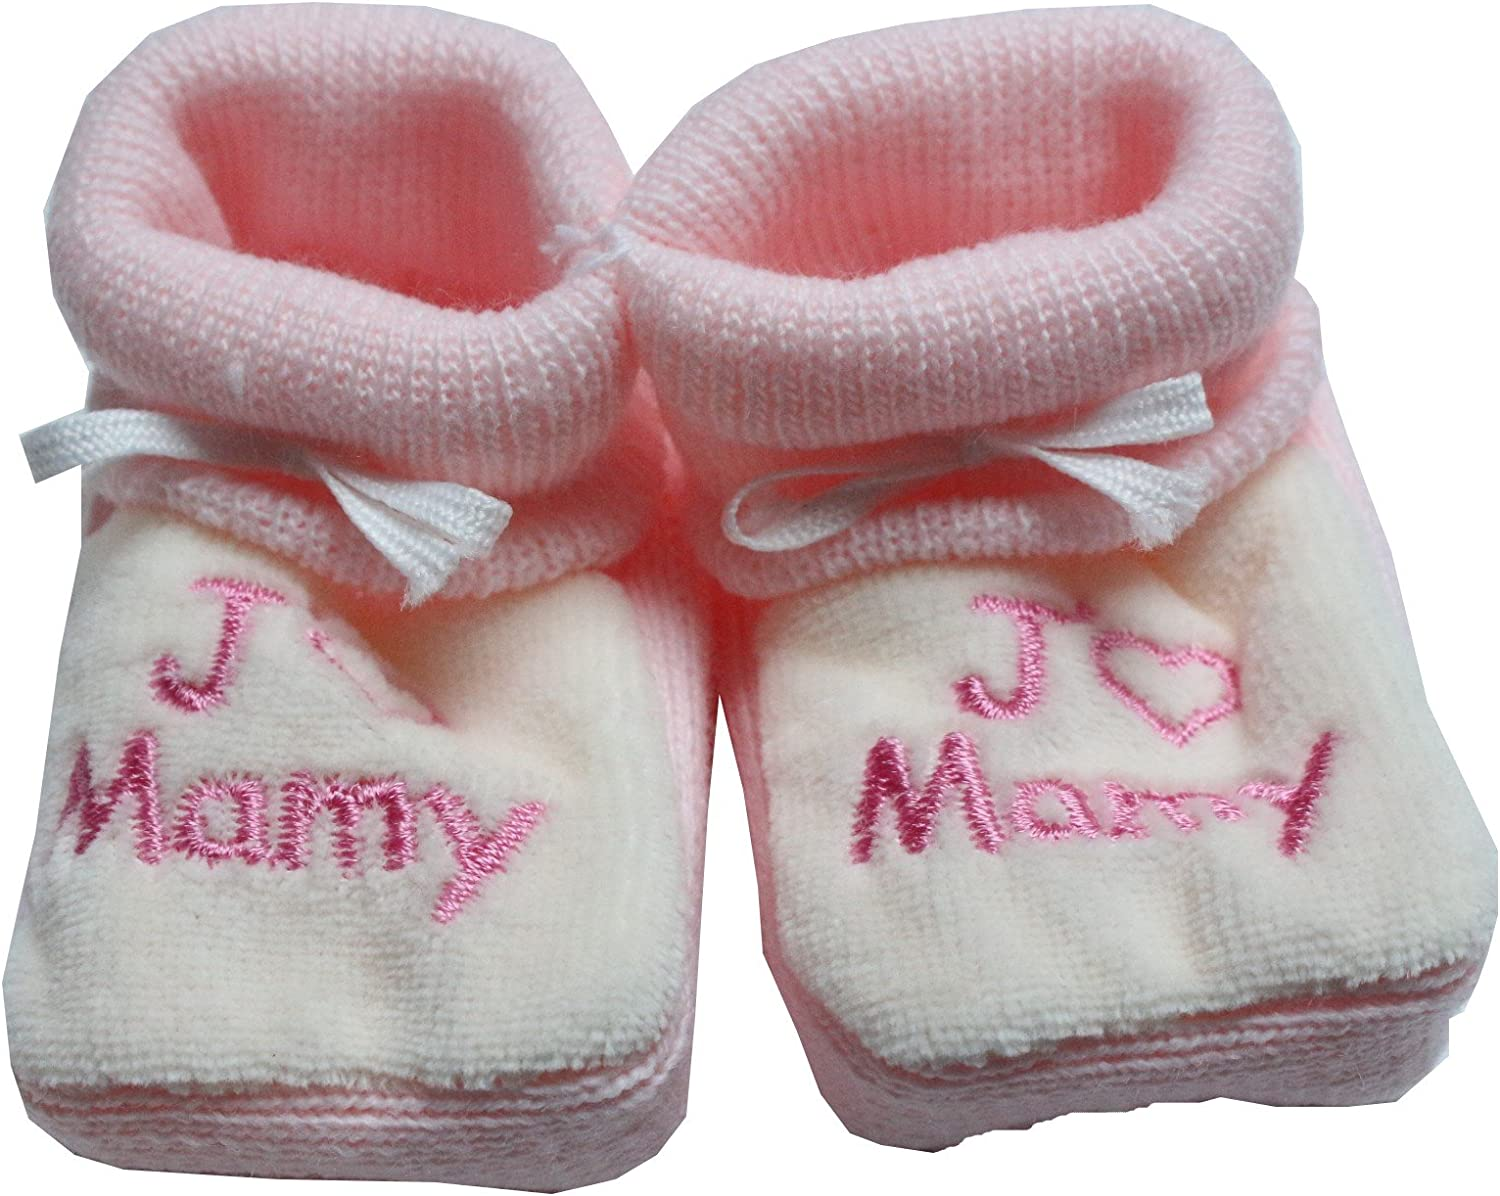 chaussons brode jaime mamy blanc rose